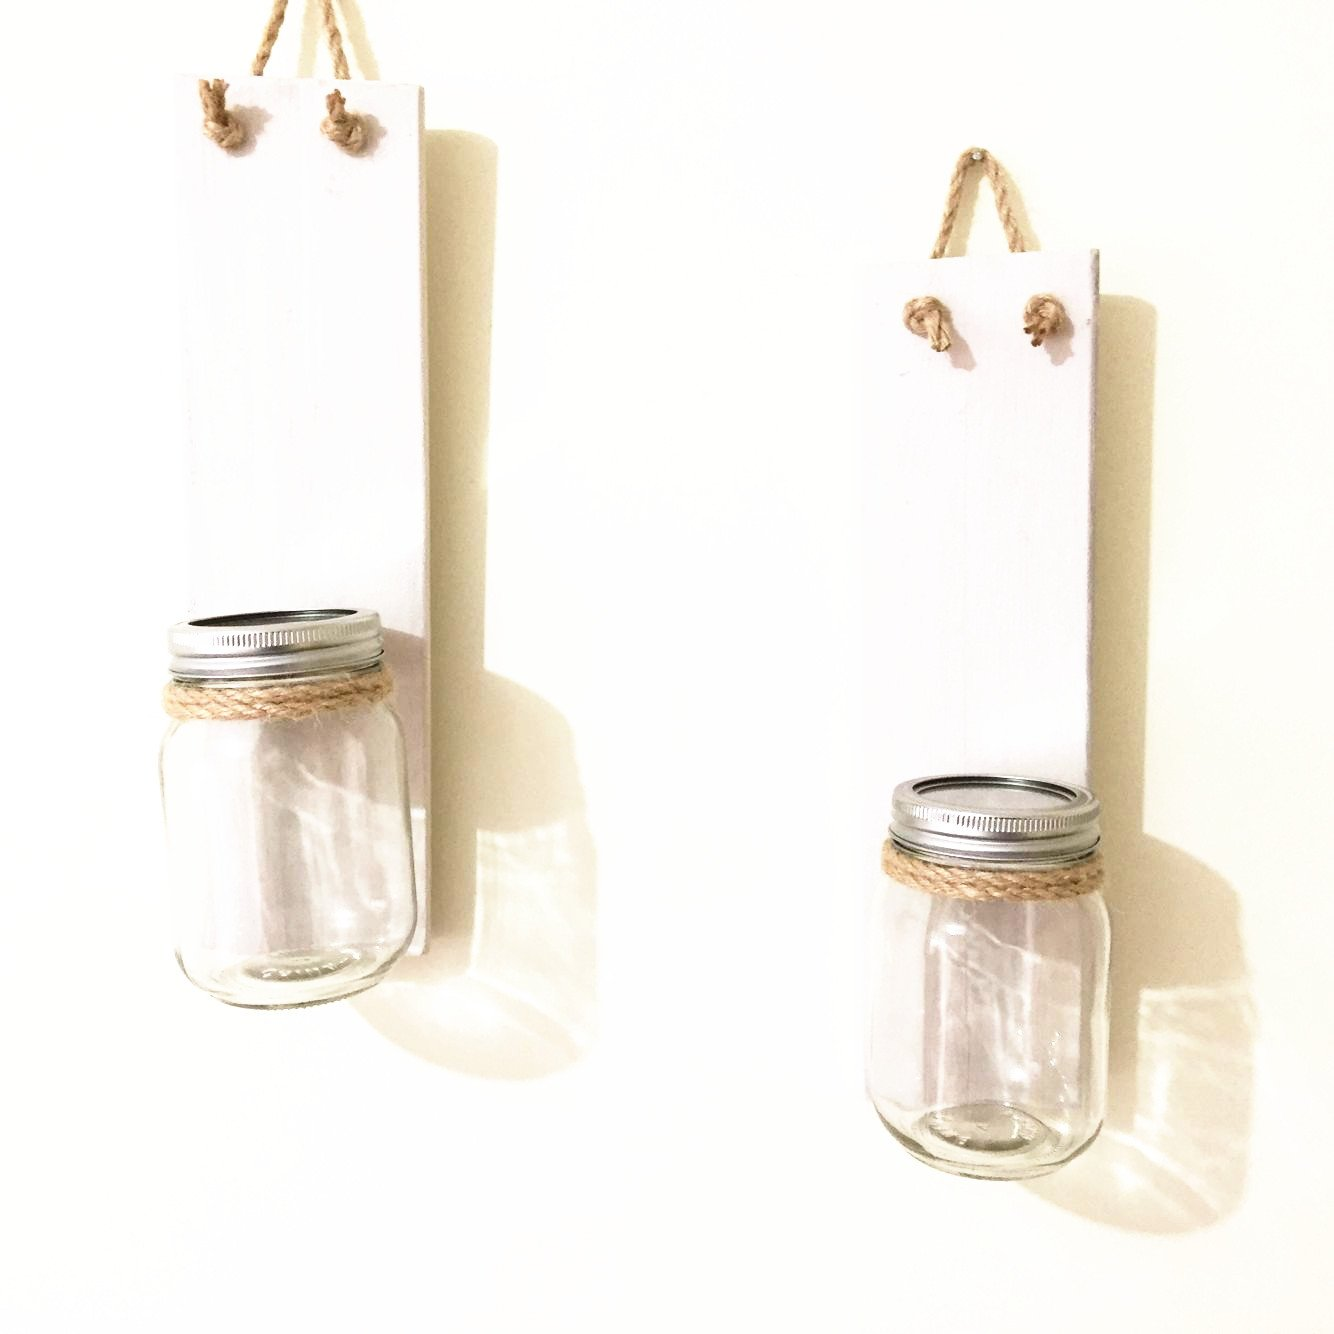 loveyourlife Set of Two Mason Jar Wall Sconces With Hydrangeas, Rustic Home Decor Rustic Wedding Gift, White Wood Wall Candle Holders, Haning Wall Sconce (With Pink Flower)